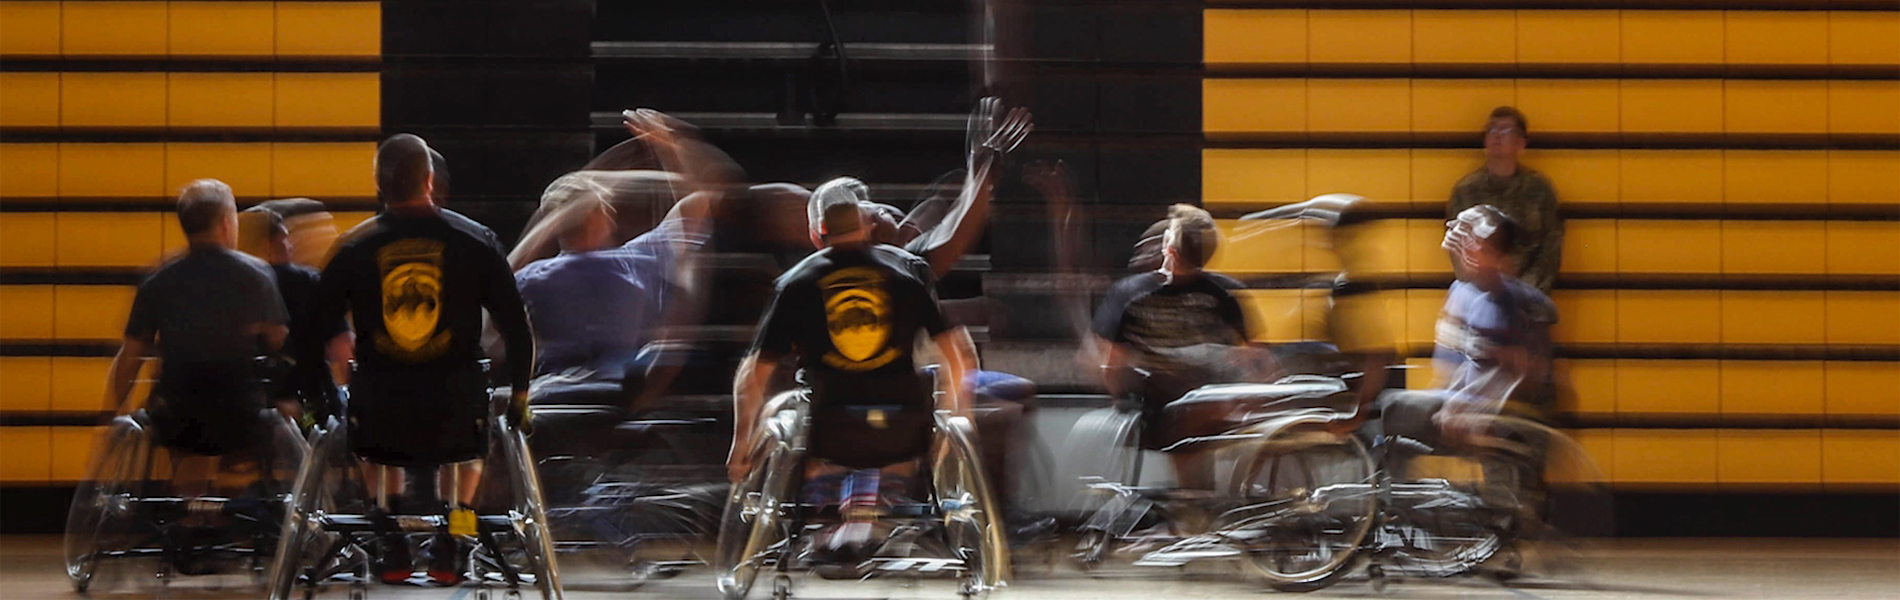 Group of men in wheelchairs playing basketball in a gym.